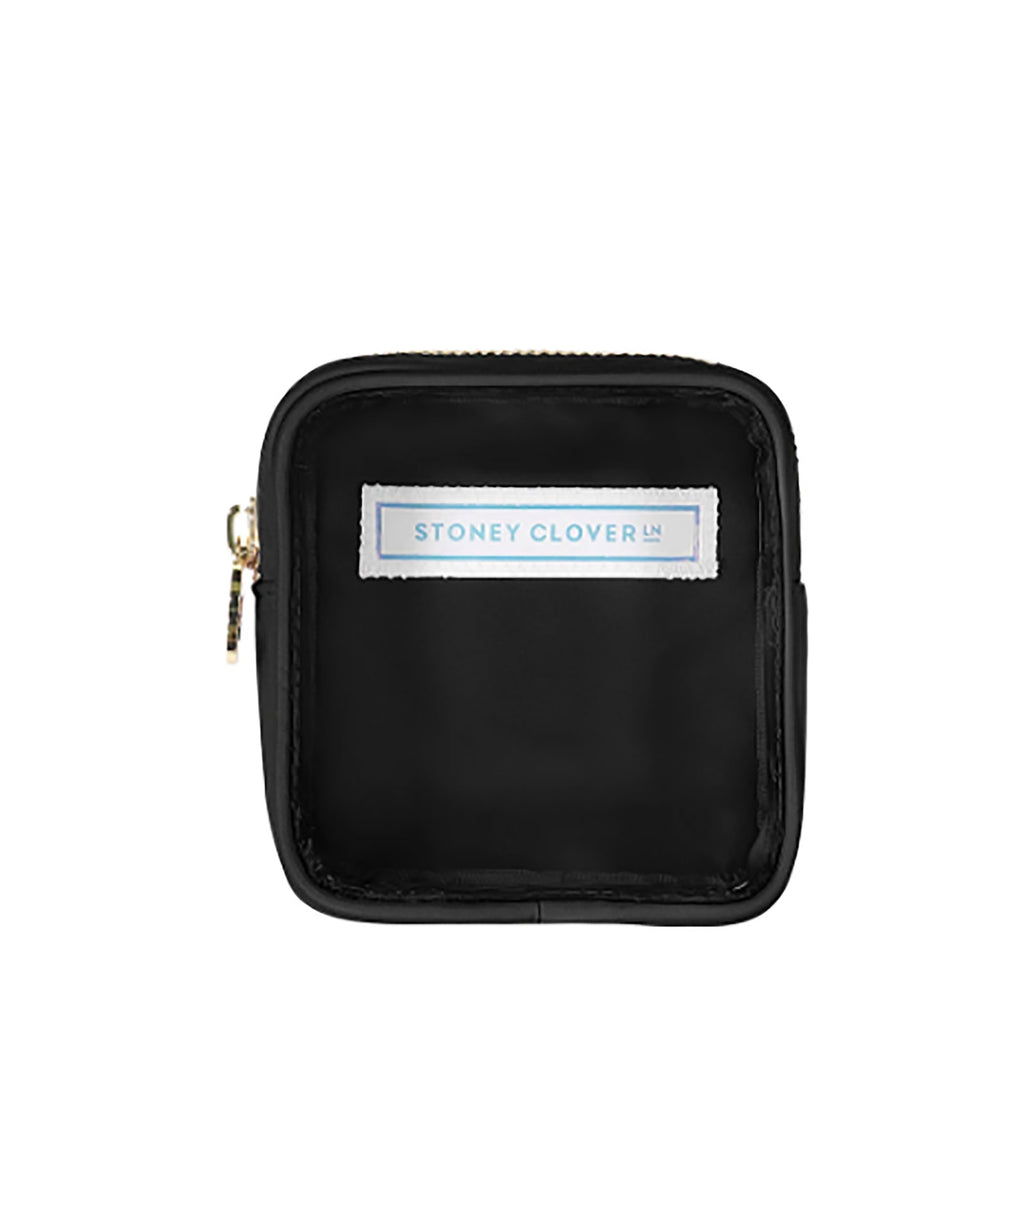 Stoney Clover Mini Noir Clear Pouch